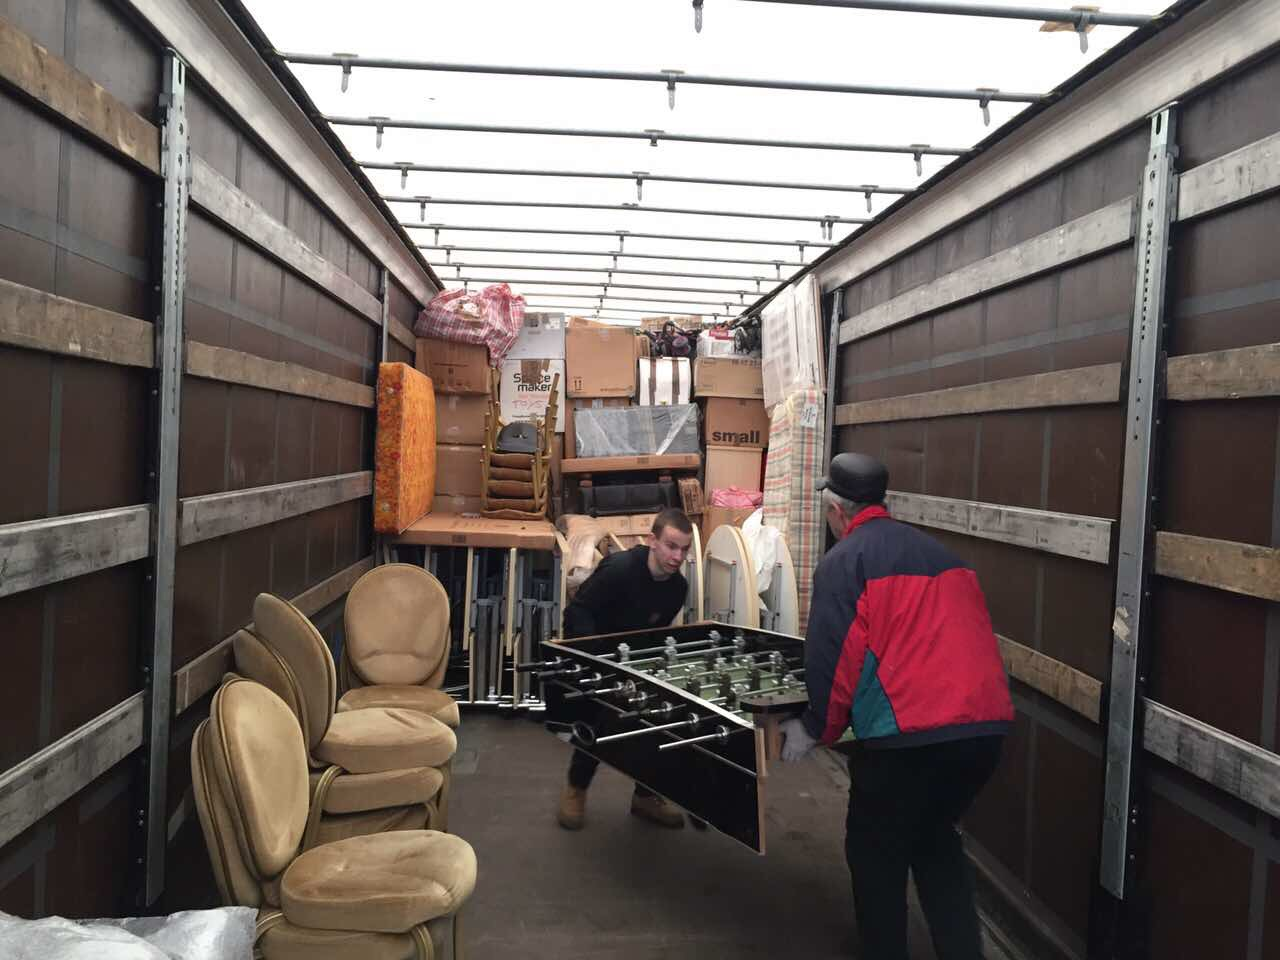 Humanitarian aid consignment arrives in Belarus